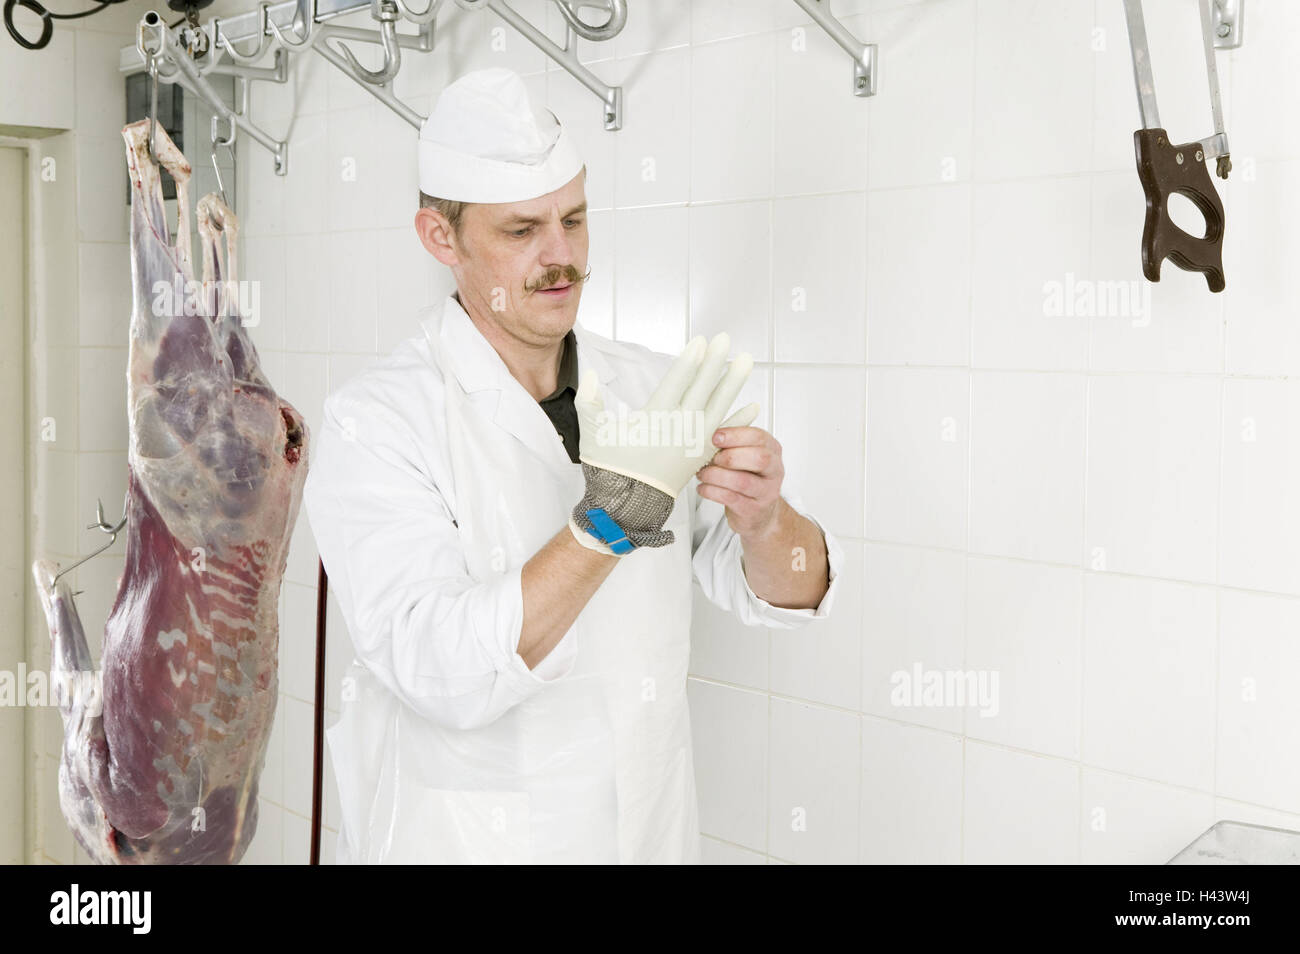 Butcher, deer, jointing, protective glove, rubber glove, putting on, hygiene, butcher's shop, red deer, venison, - Stock Image